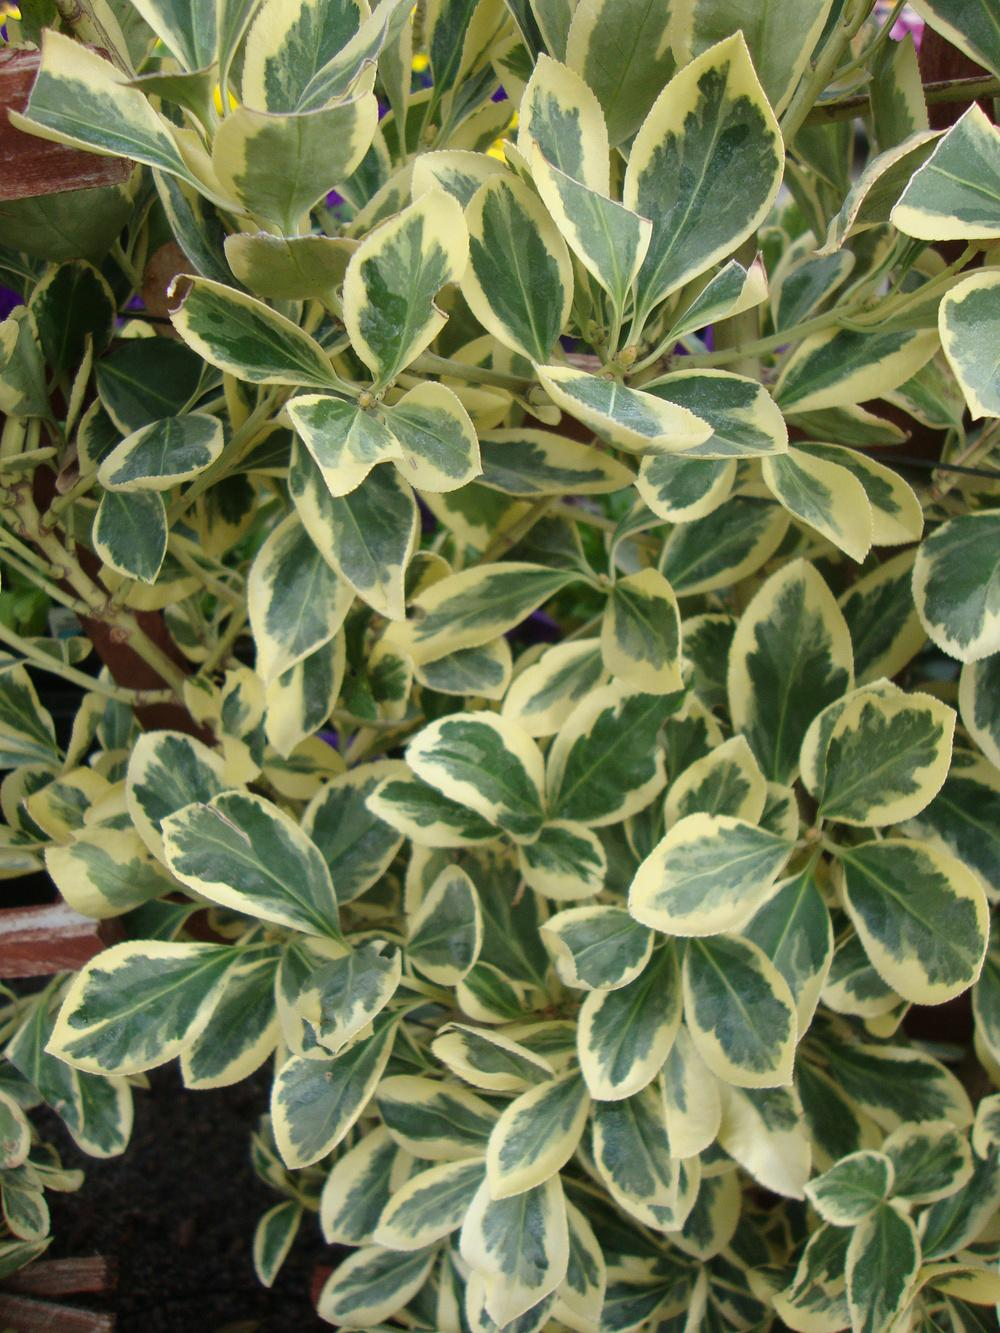 Euonymus japonicus /'Silver King/' 20 SILVER KING EUONYMUS SEEDS